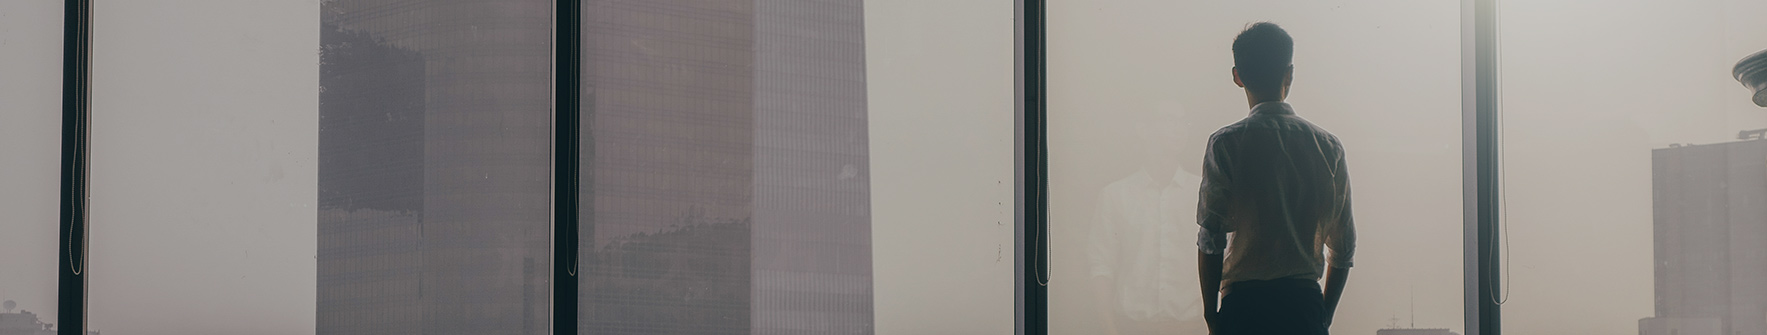 Businessman looking out of a commercial office building